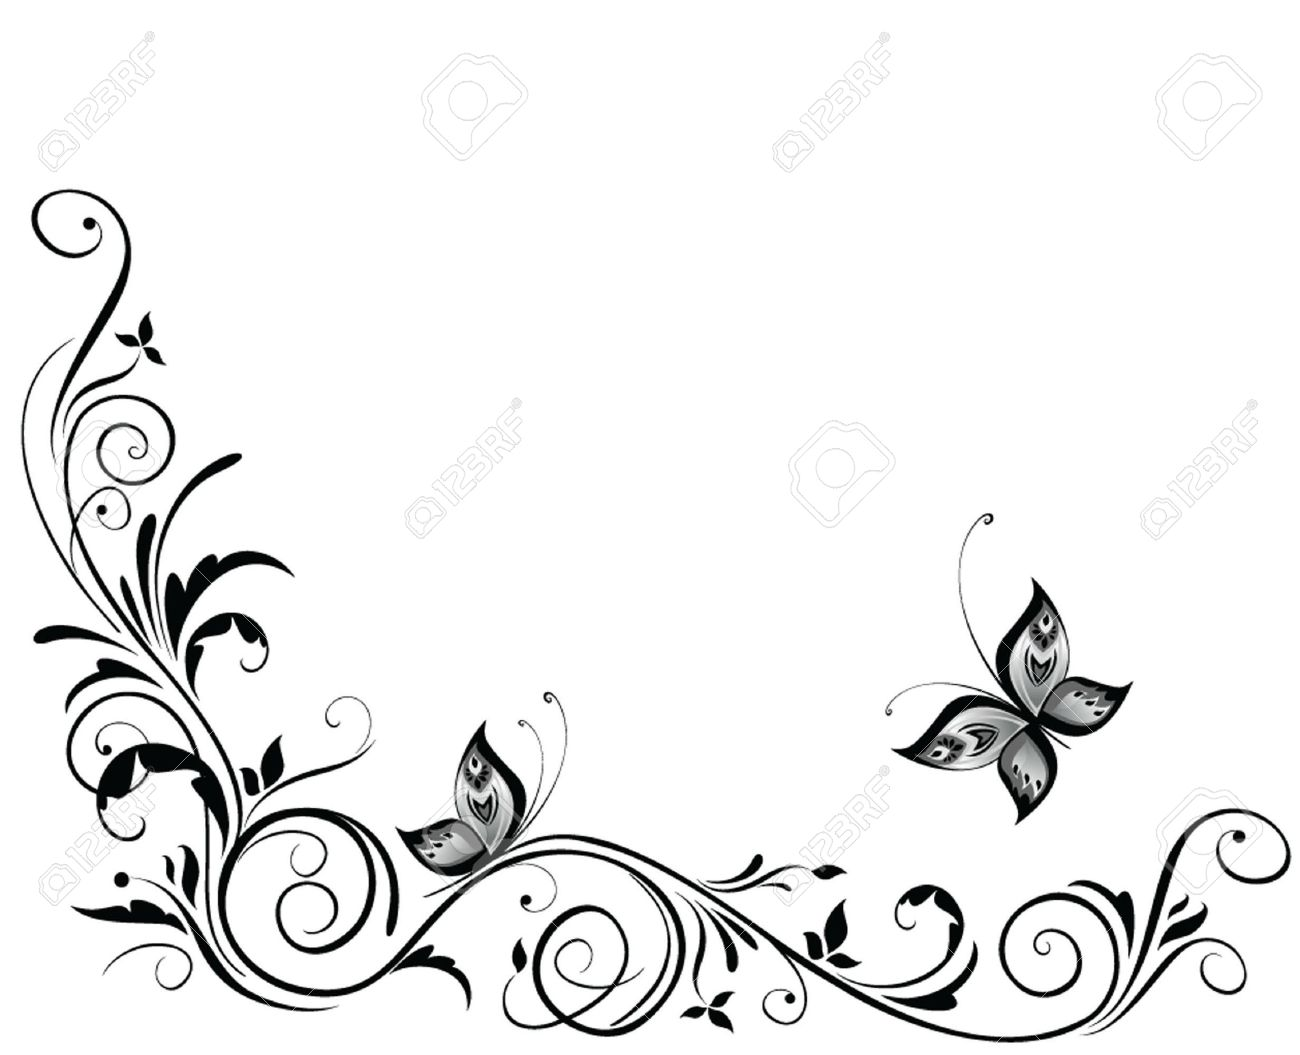 49,709 Stencil Stock Vector Illustration And Royalty Free Stencil.